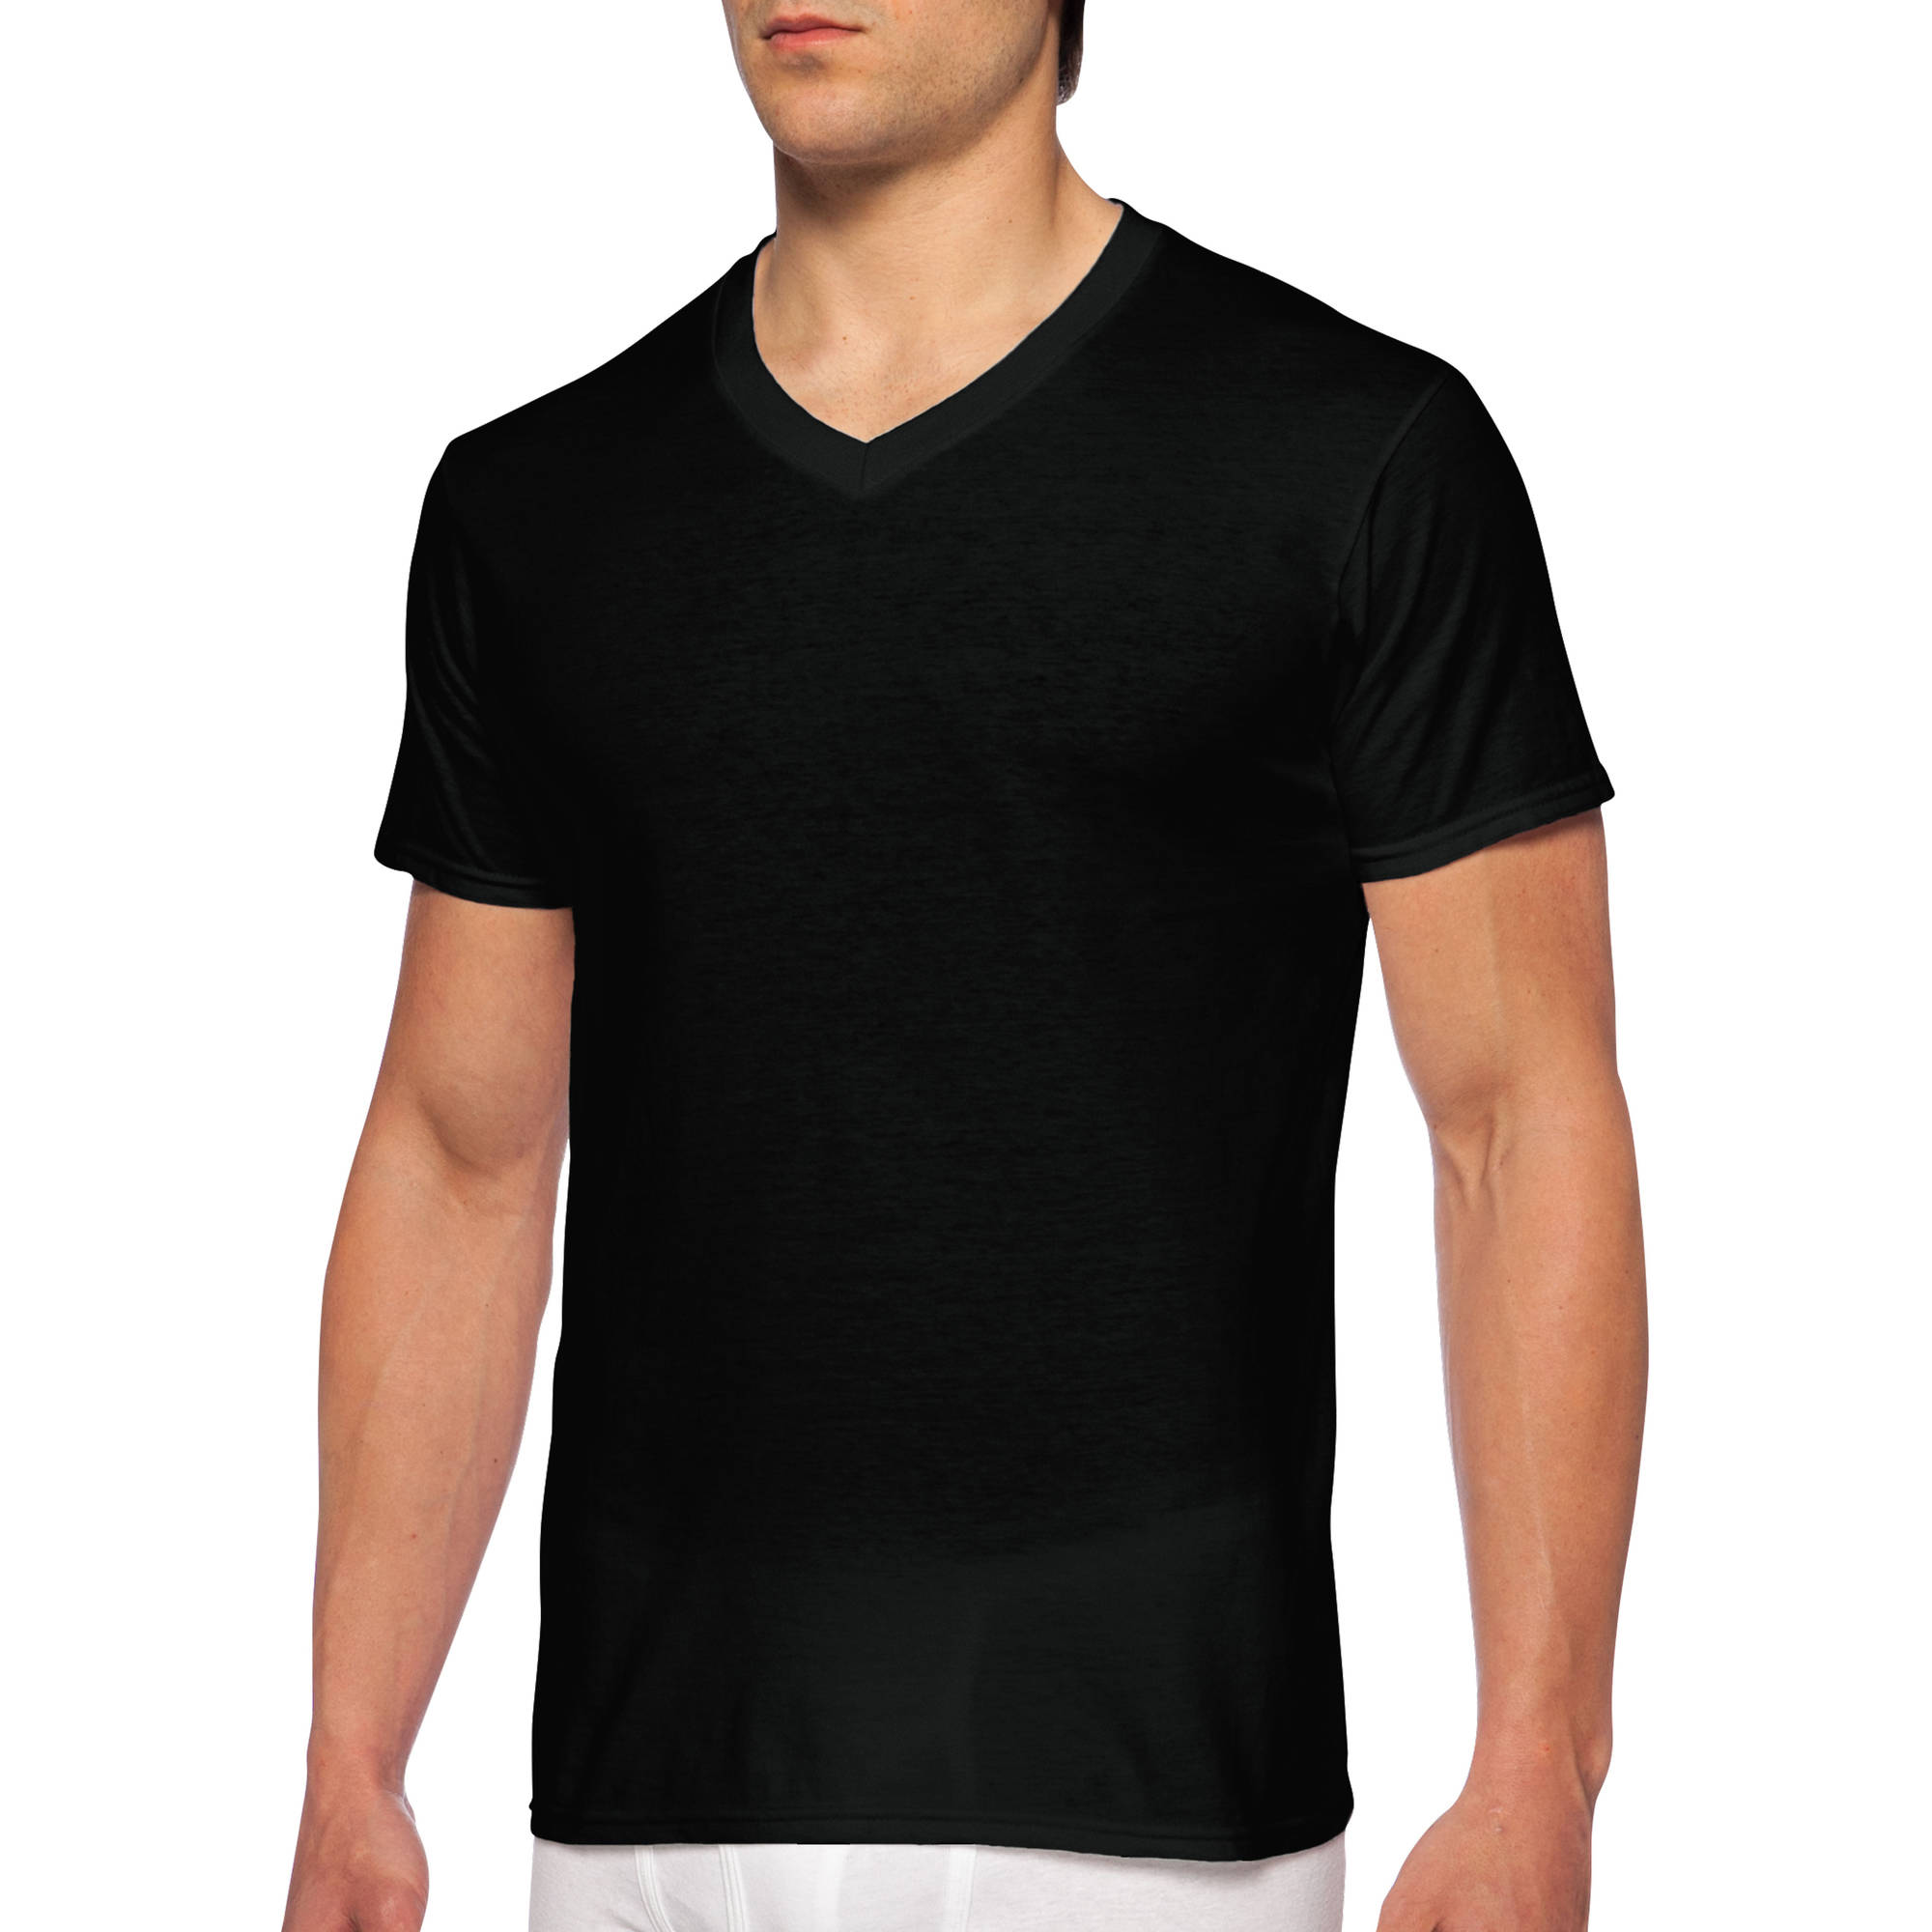 Men's Short Sleeve V-Neck Assorted Color T-Shirt, 4-Pack